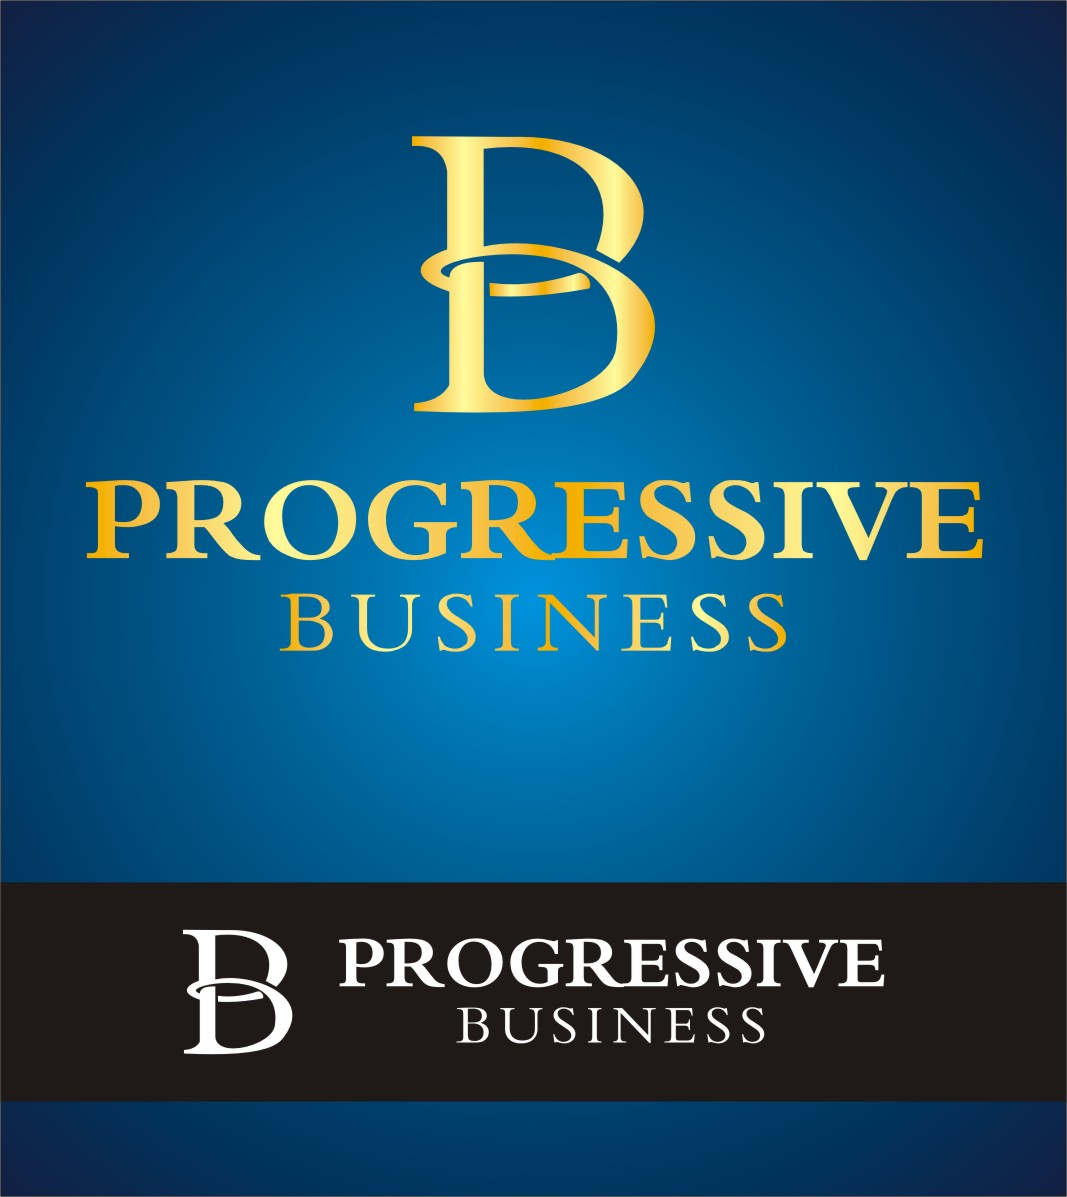 Logo Design by Spider Graphics - Entry No. 186 in the Logo Design Contest Captivating Logo Design for Progressive Business.